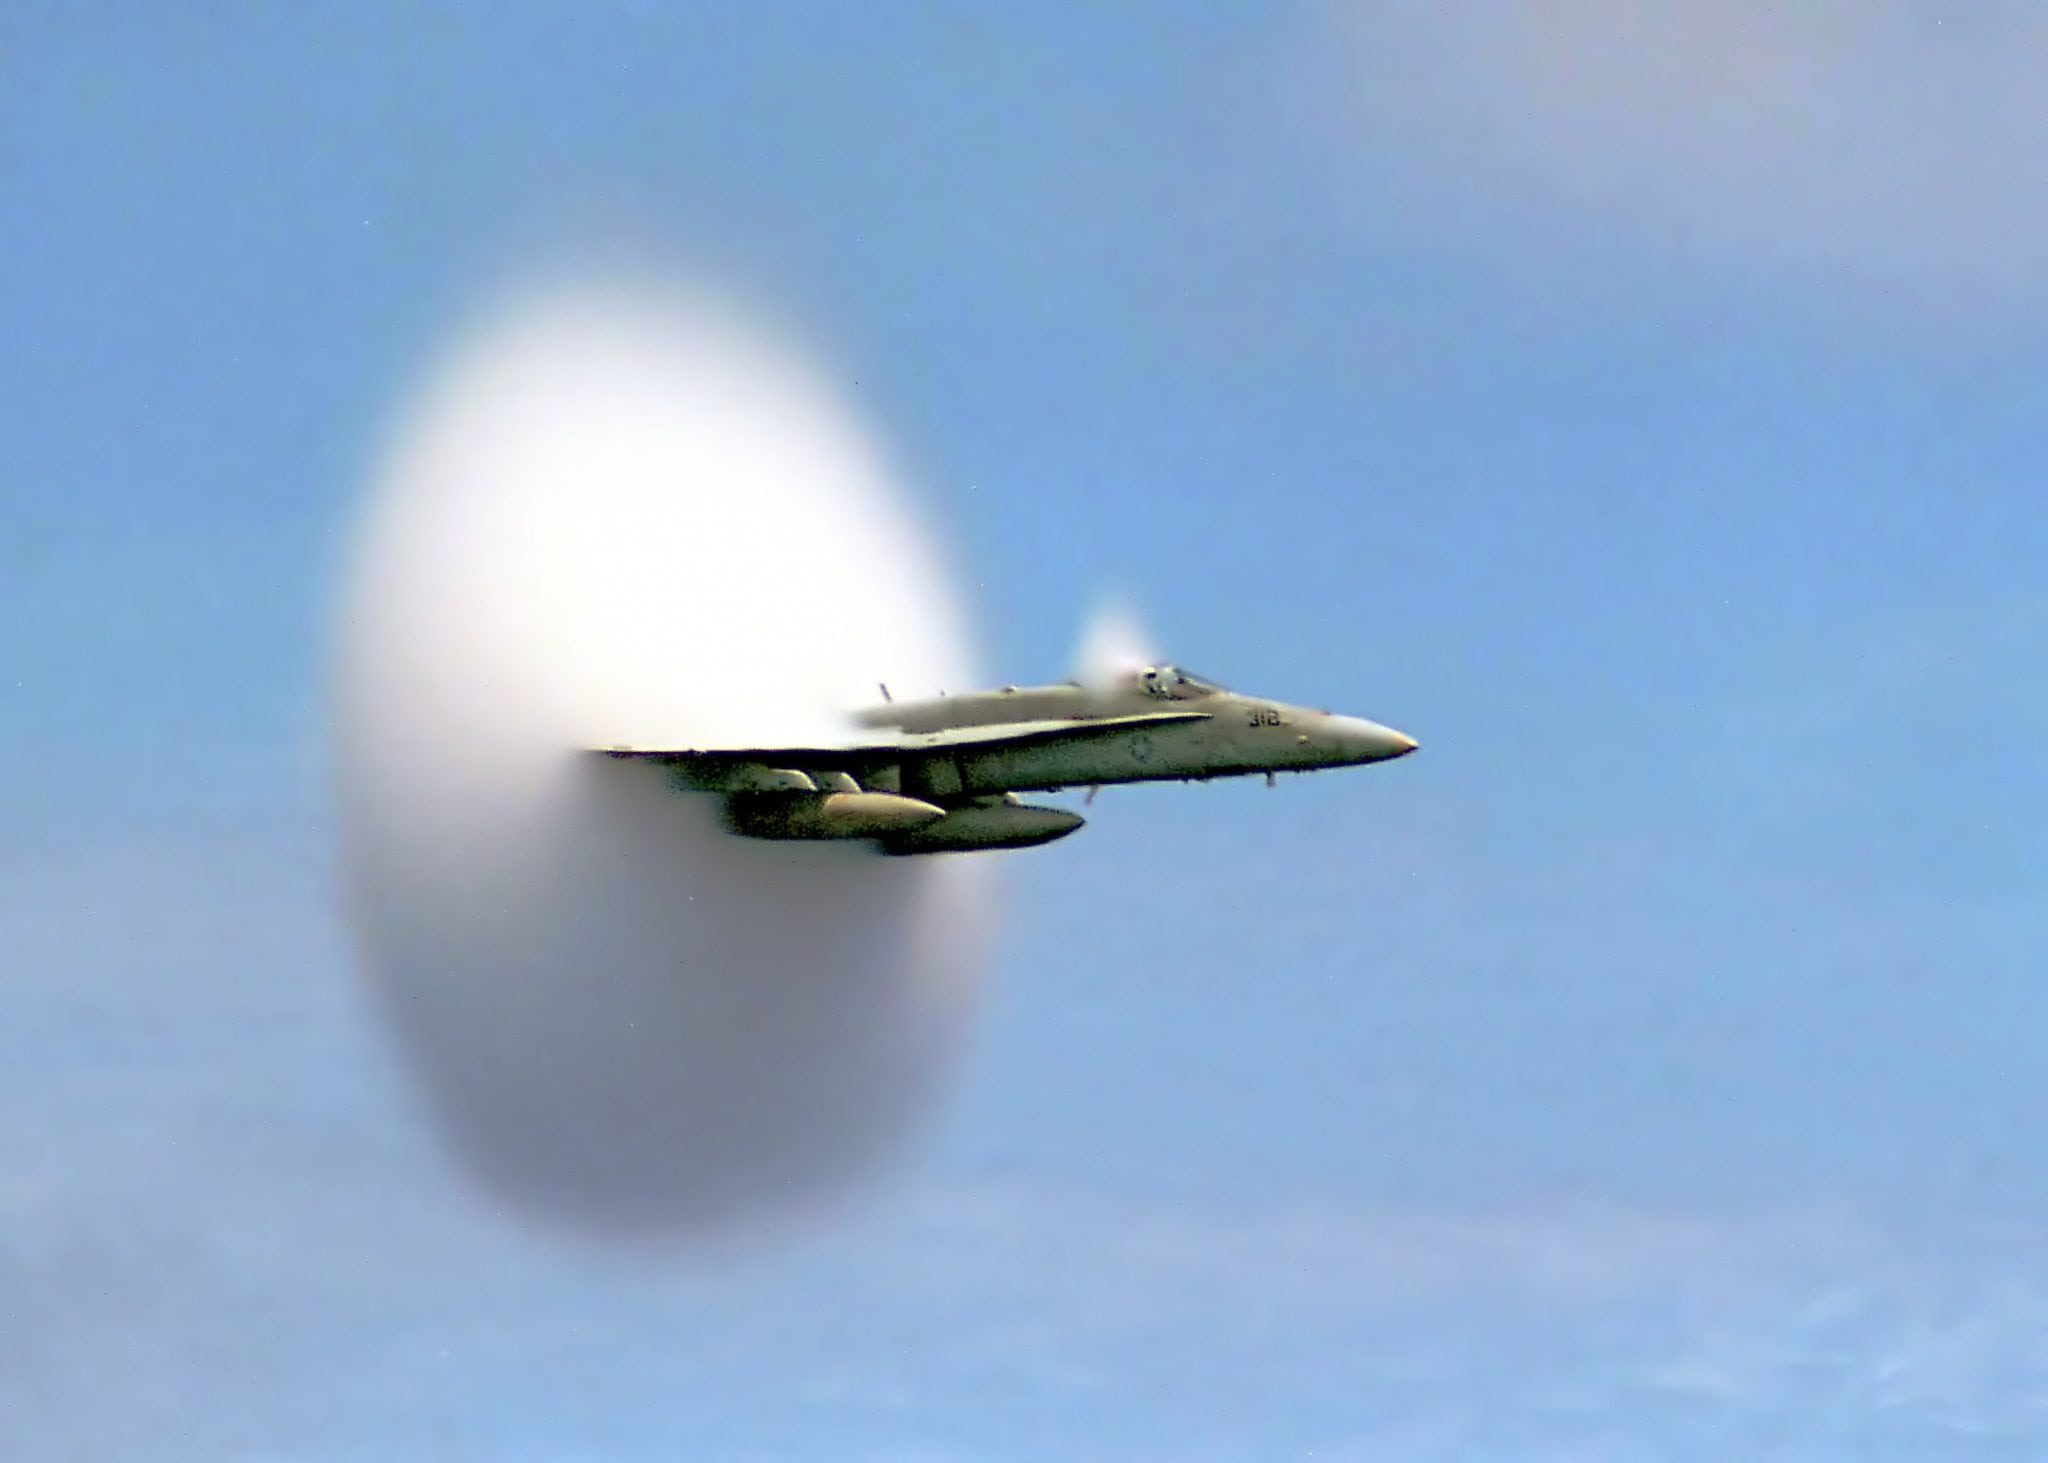 U.S. Navy F/A-18 approaching the sound barrier. The white halo is formed by condensed water droplets which result from the shock wave shedding from the aircraft.